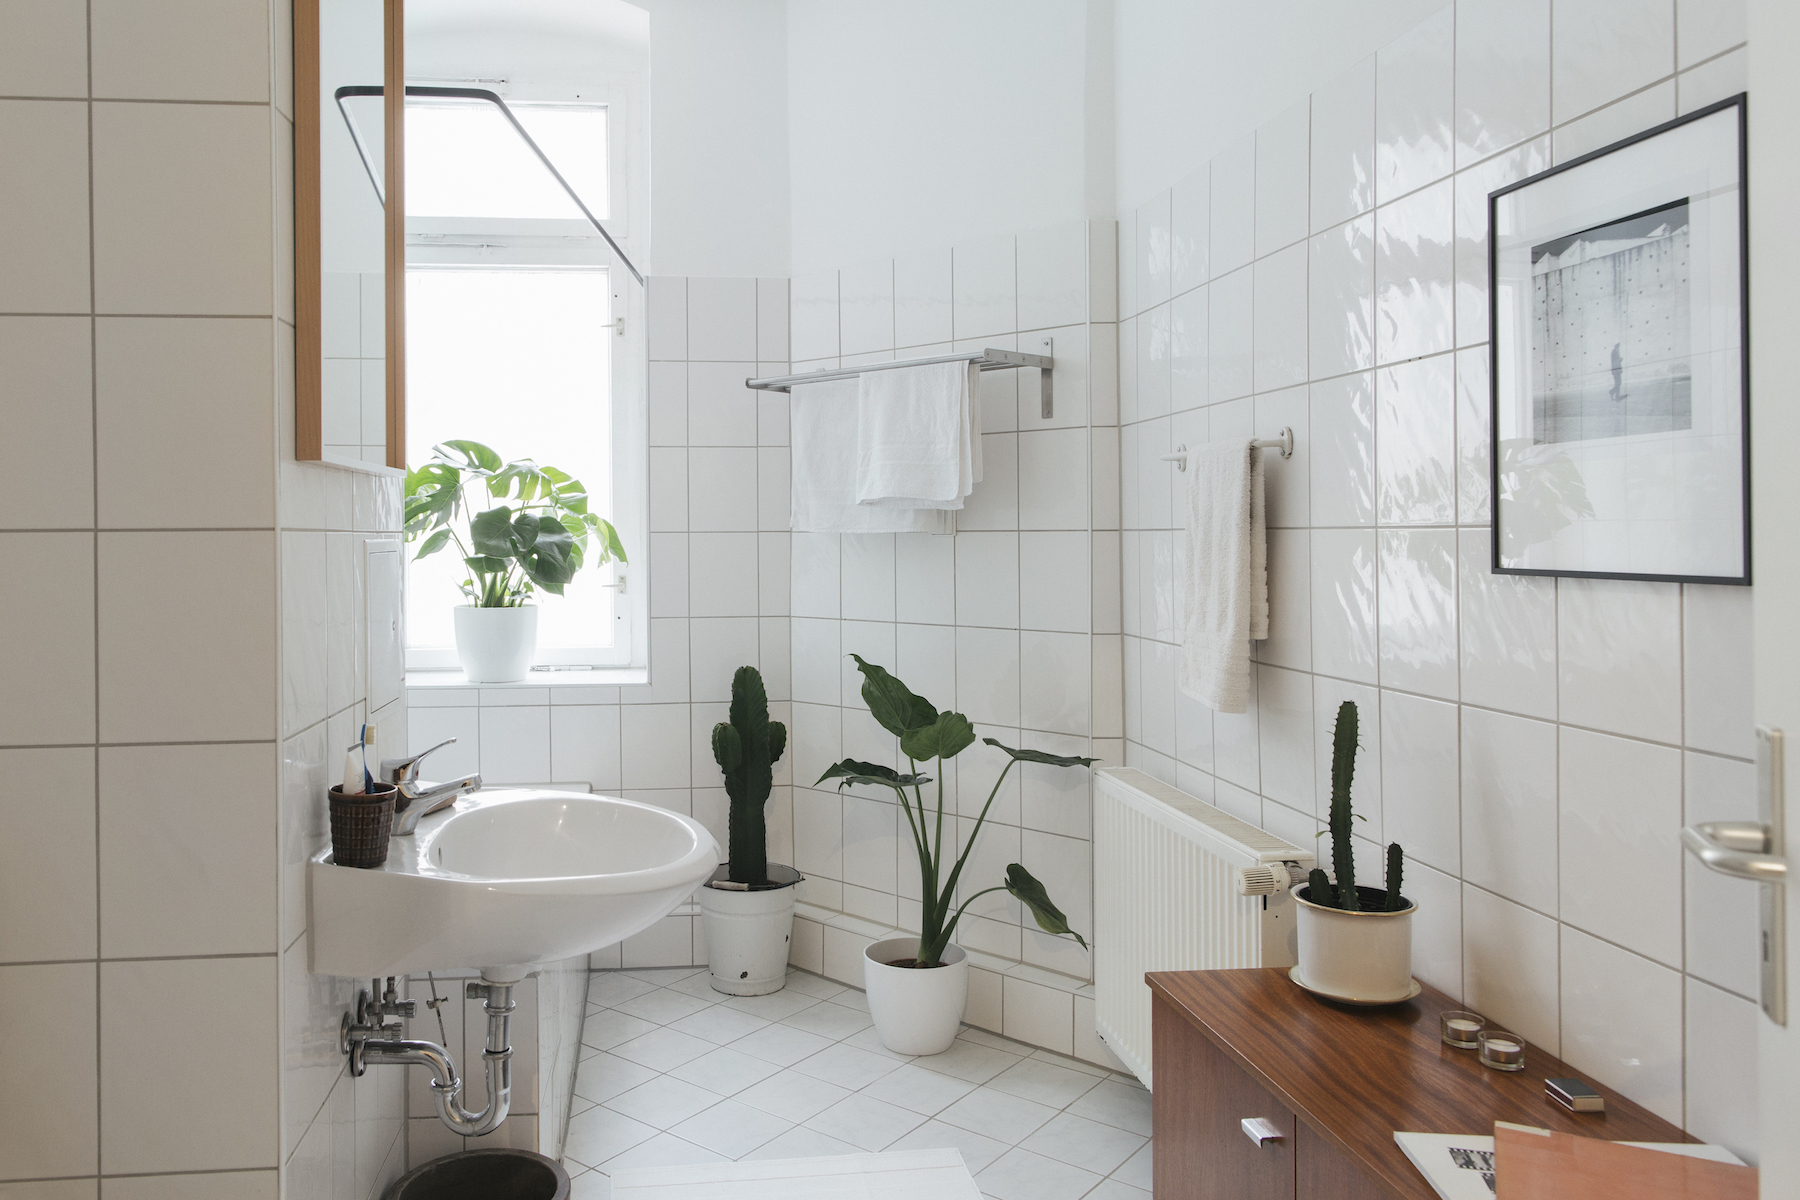 Clean white tile bathroom with plants